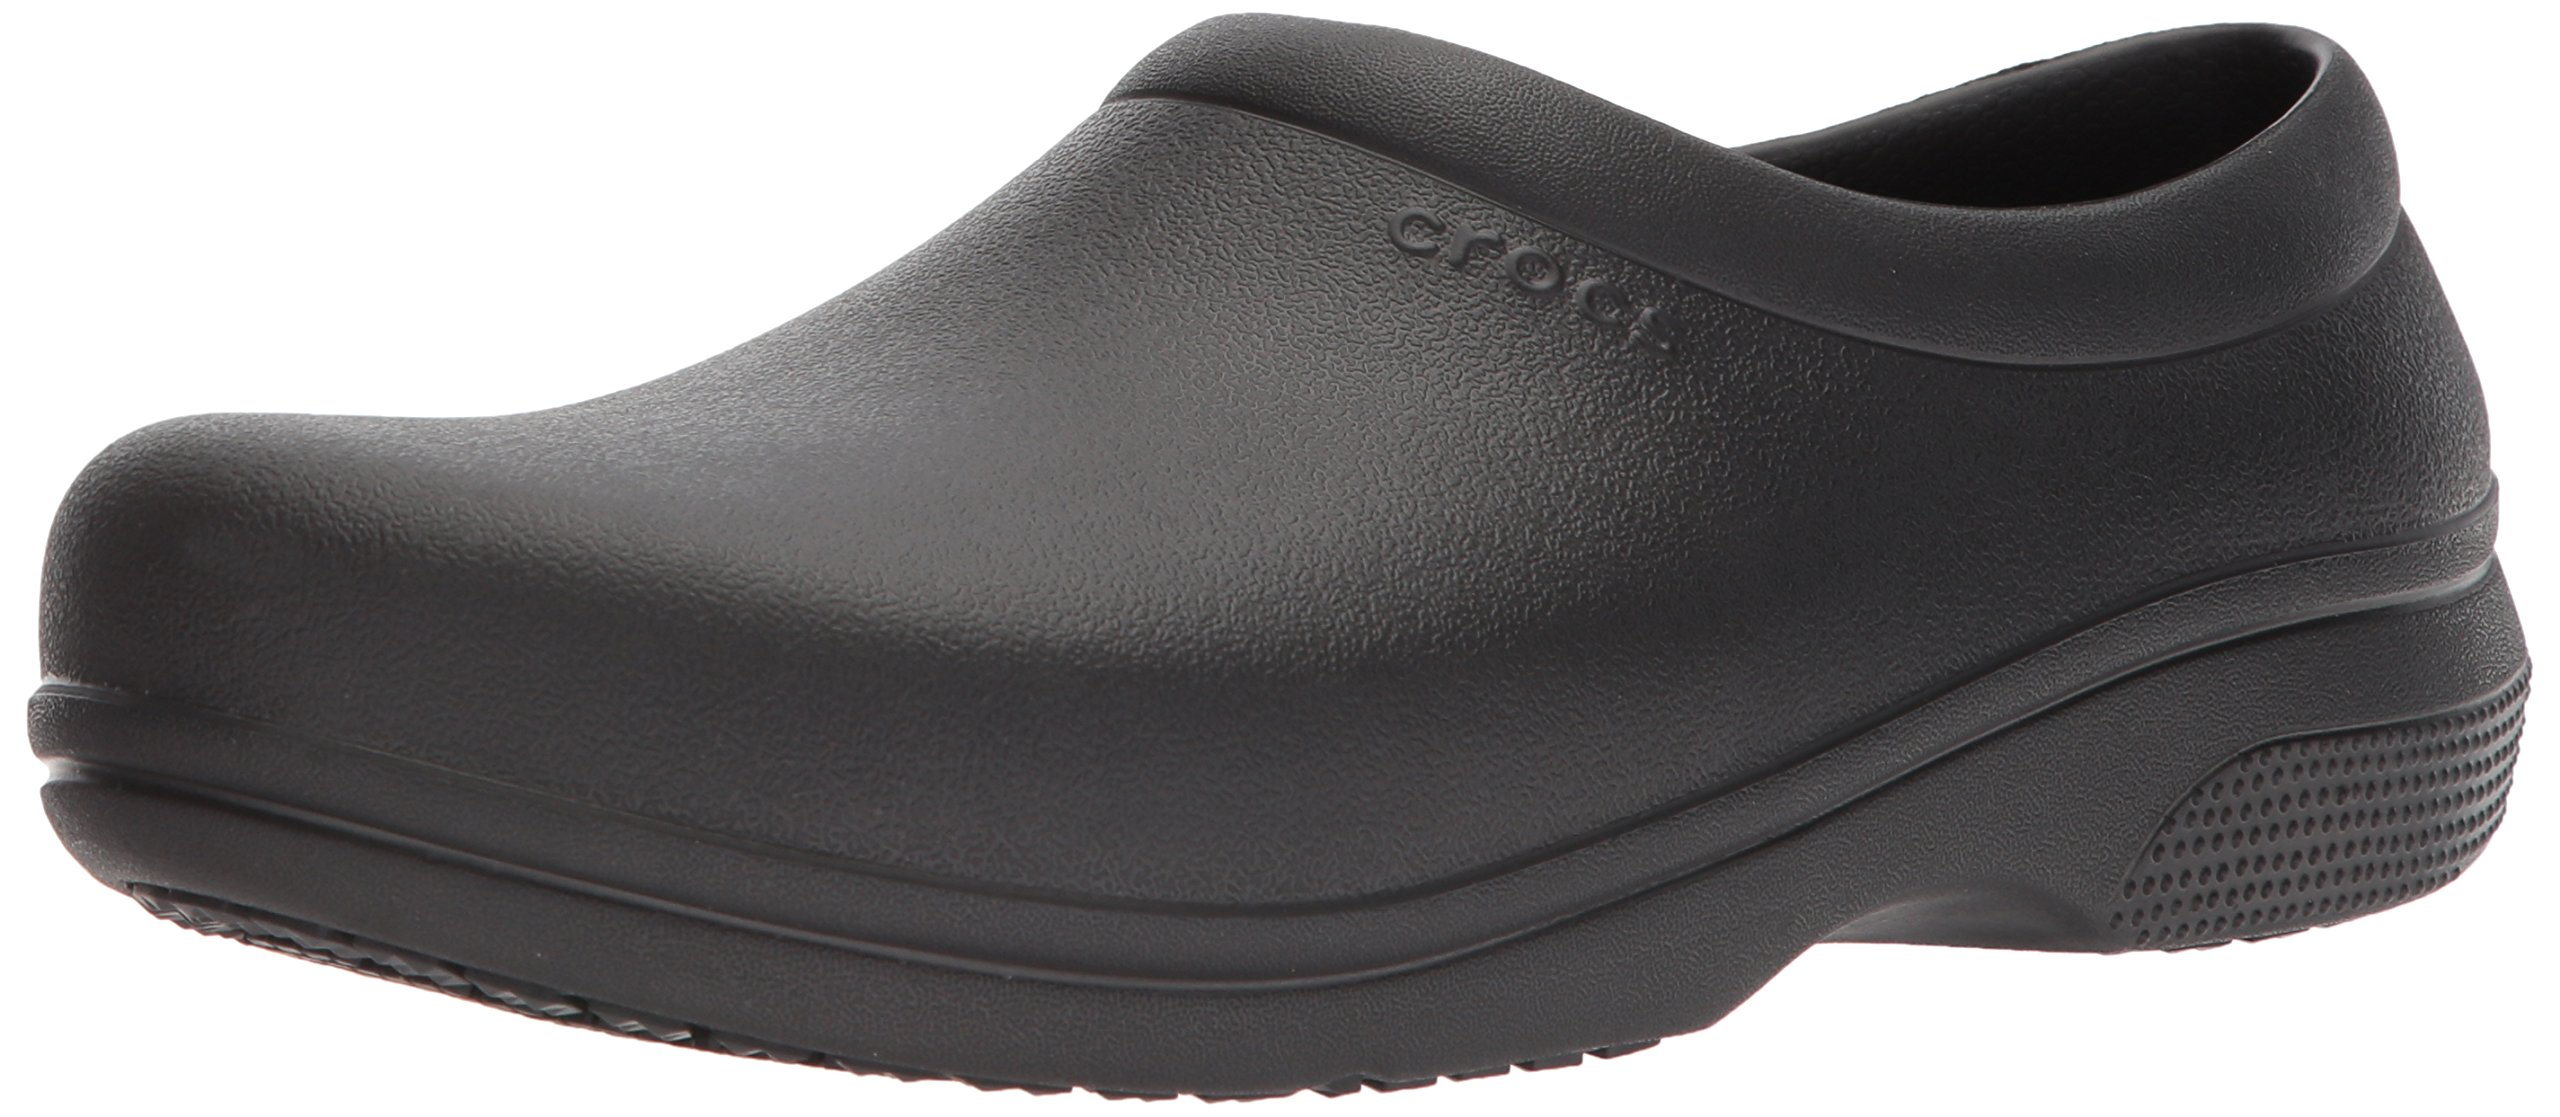 Crocs on The Clock Work Slipon Medical Professional Shoe, Black, 11 US Men/ 13 US Women M US by Crocs